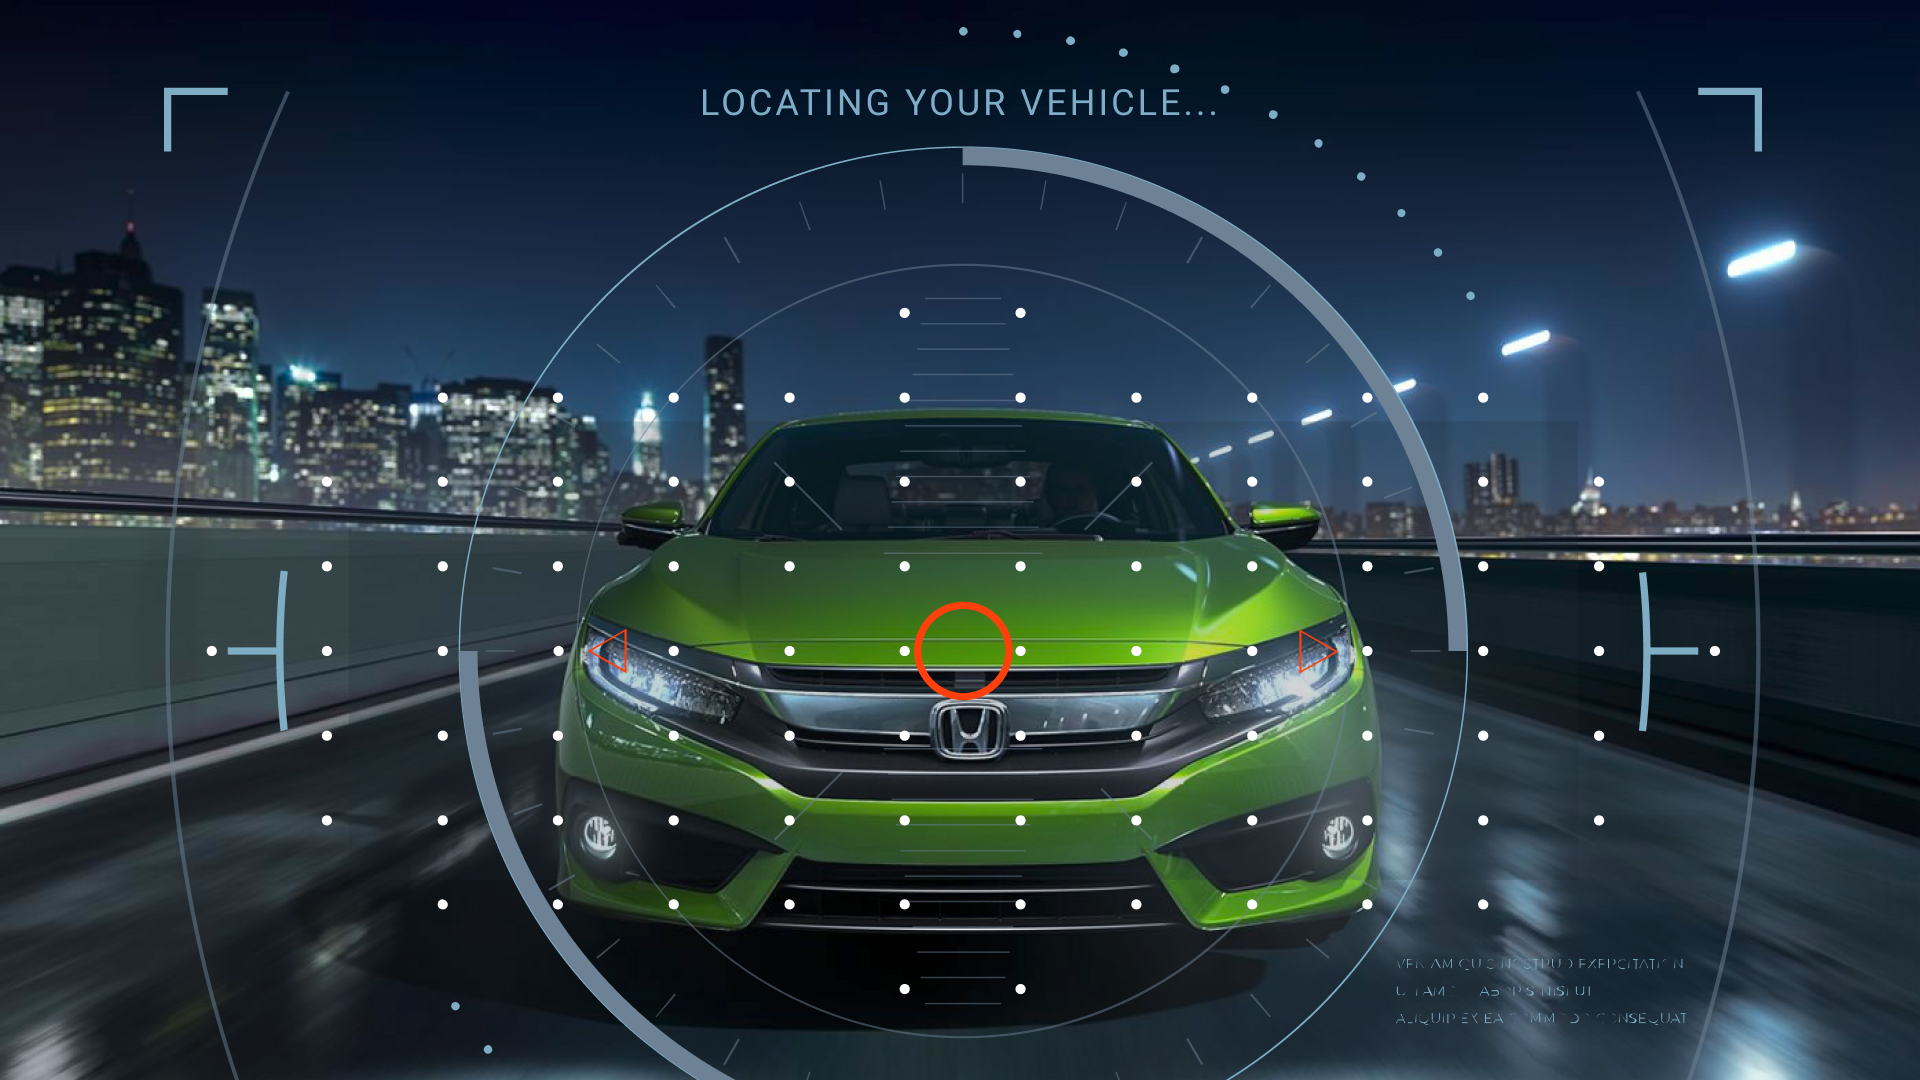 Vehicle Locator Service